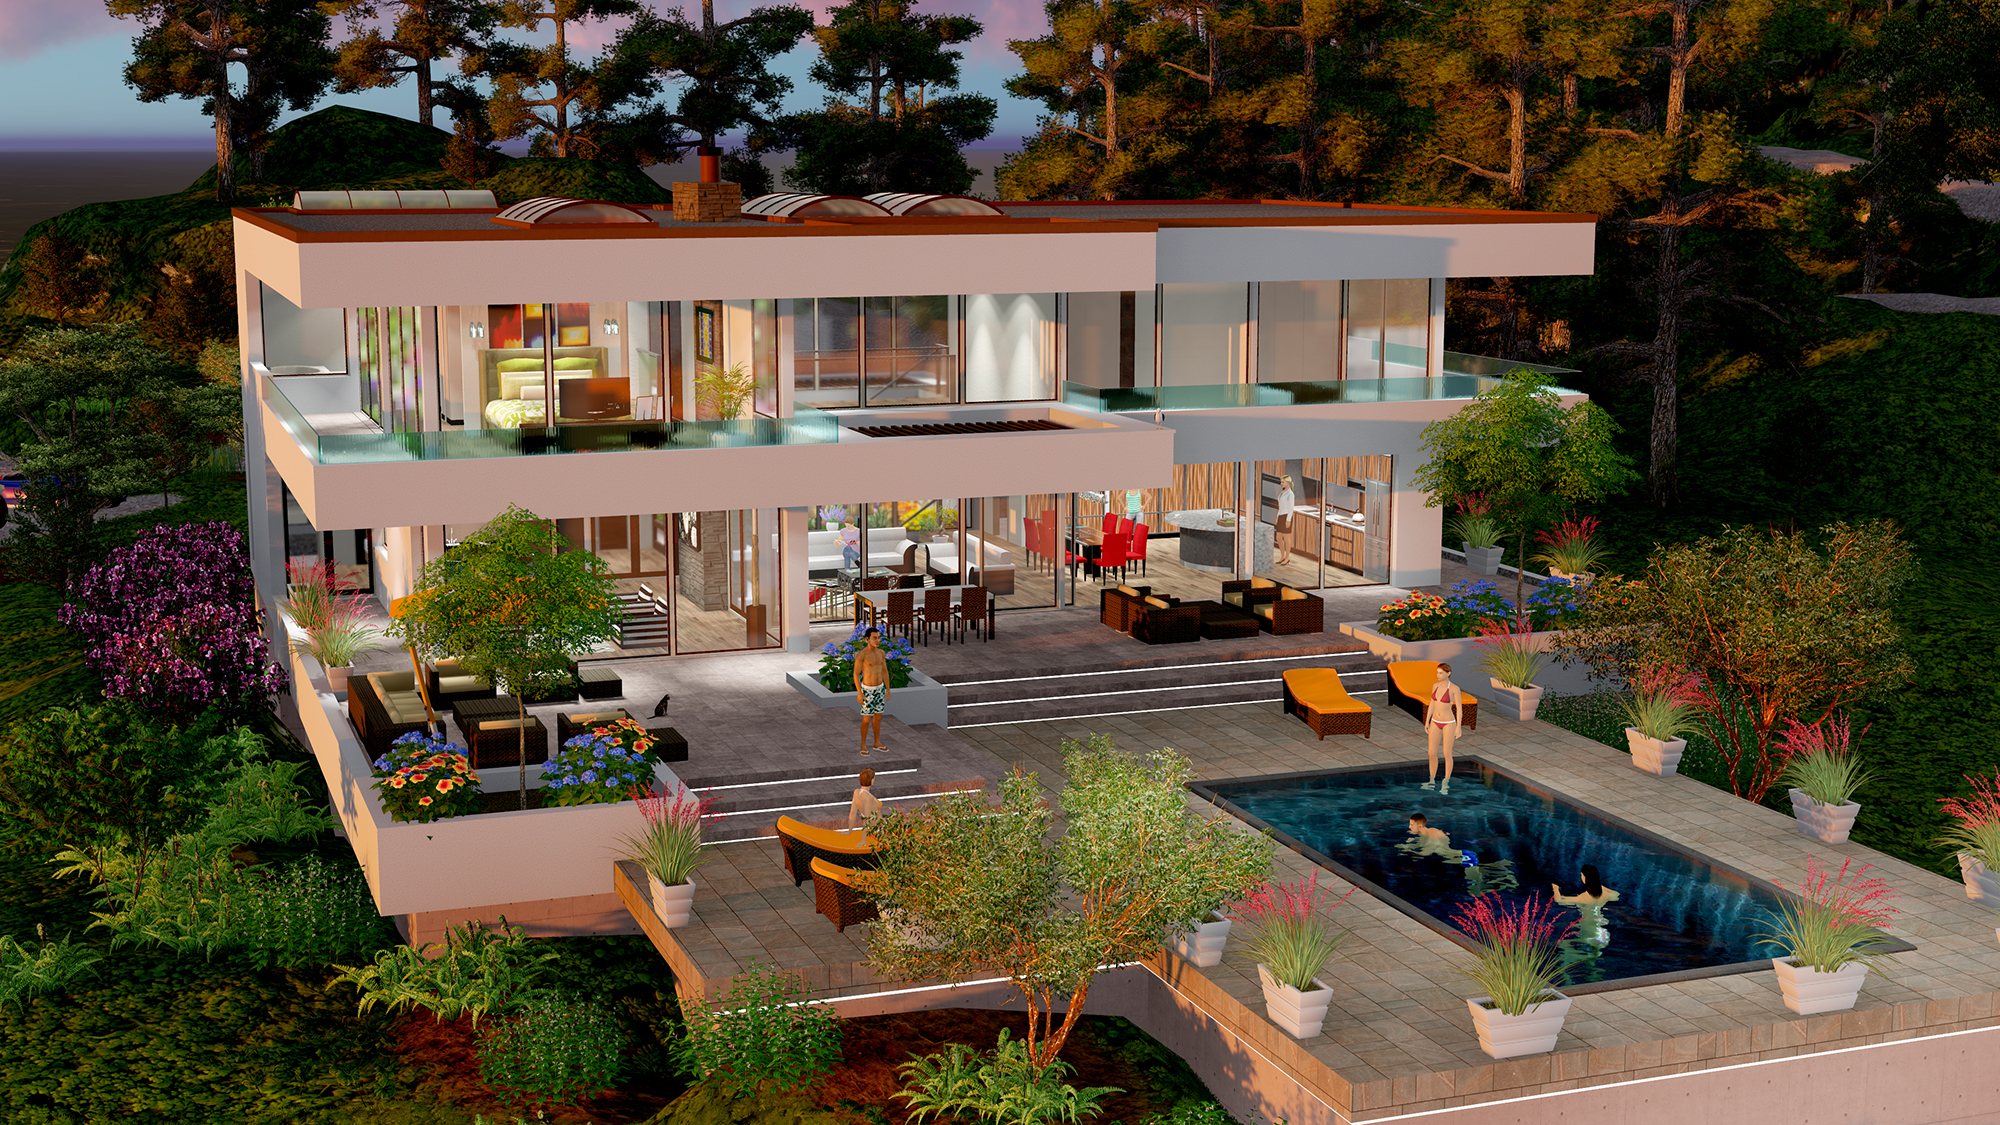 BEVERLY HILLS DREAM HOUSE – Gallery – Next Generation Living Homes